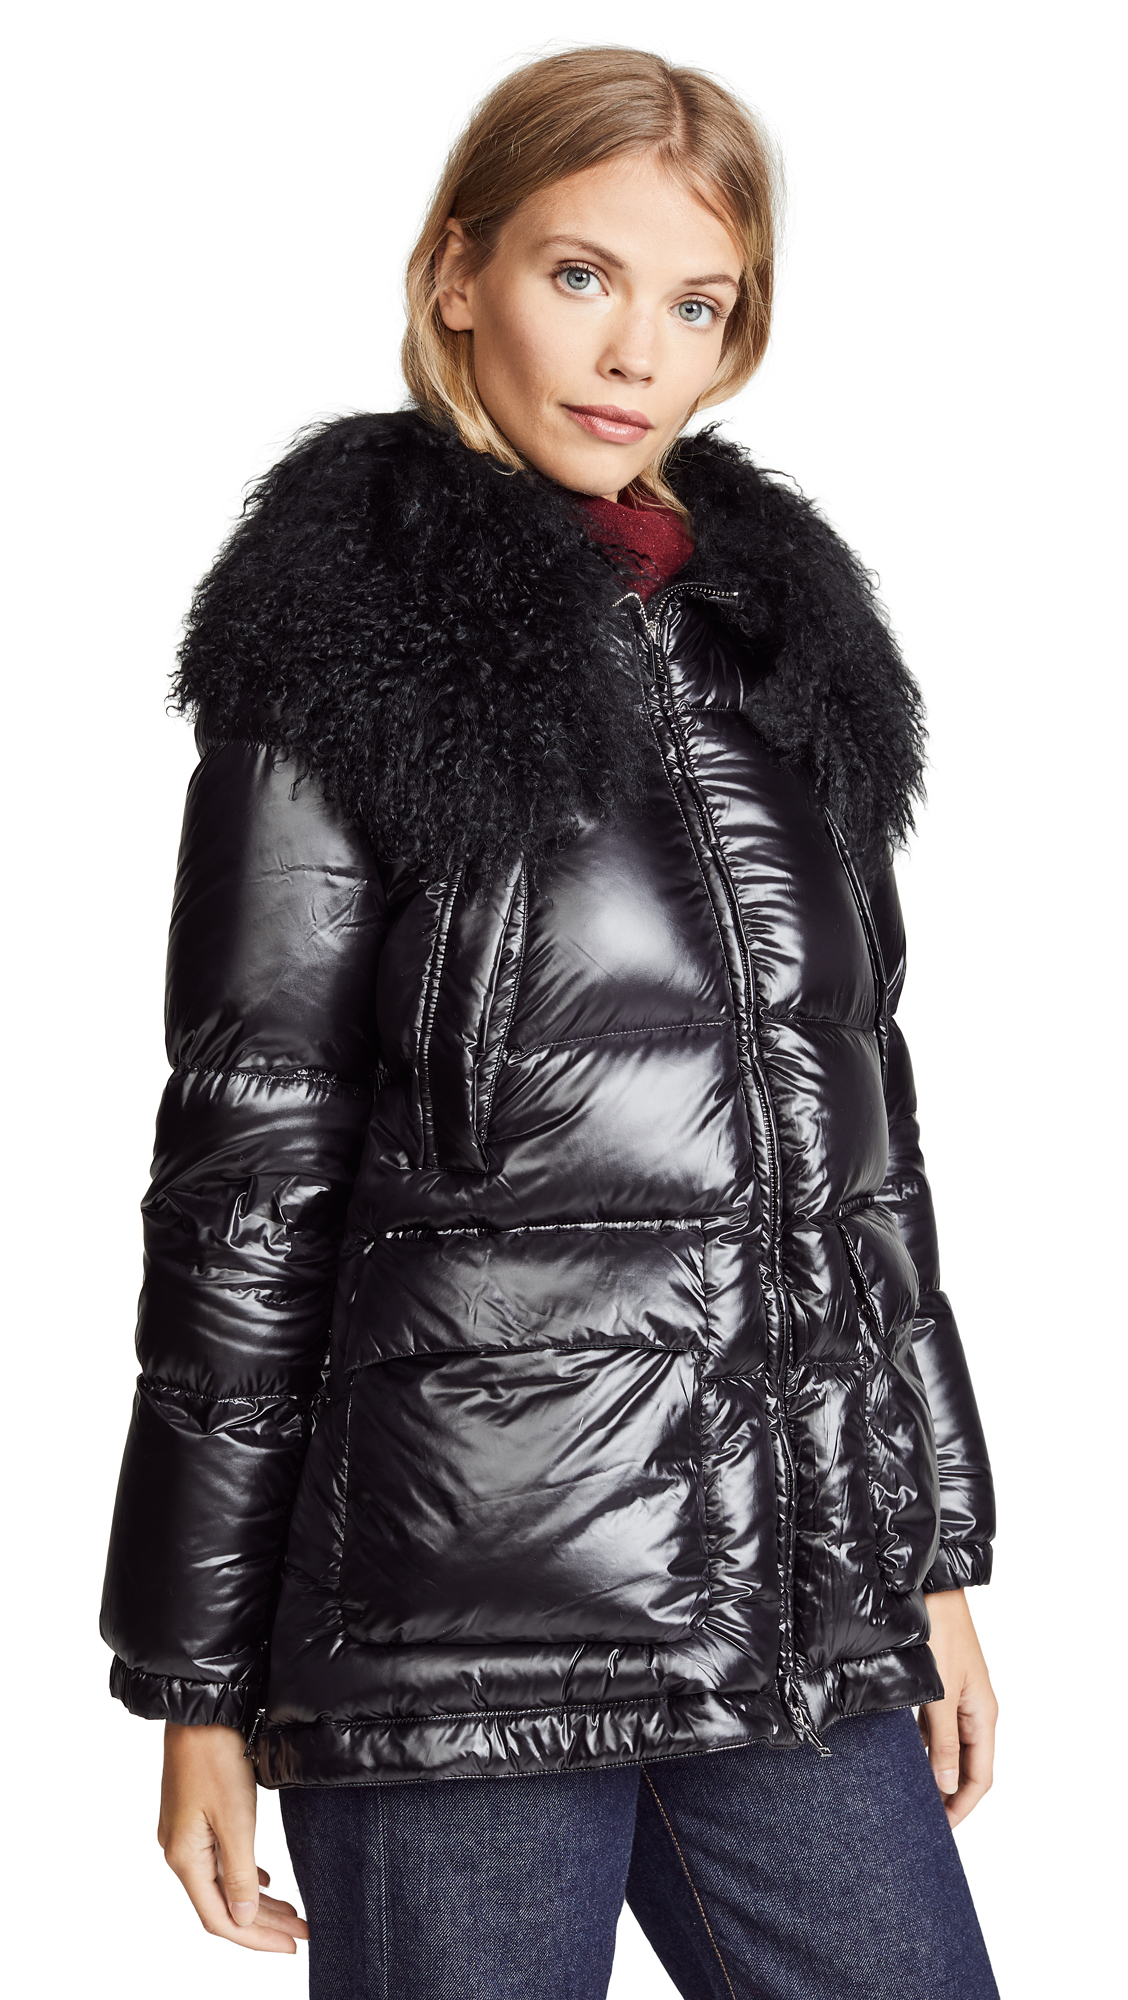 ADD Down Jacket With Fur Border in Black